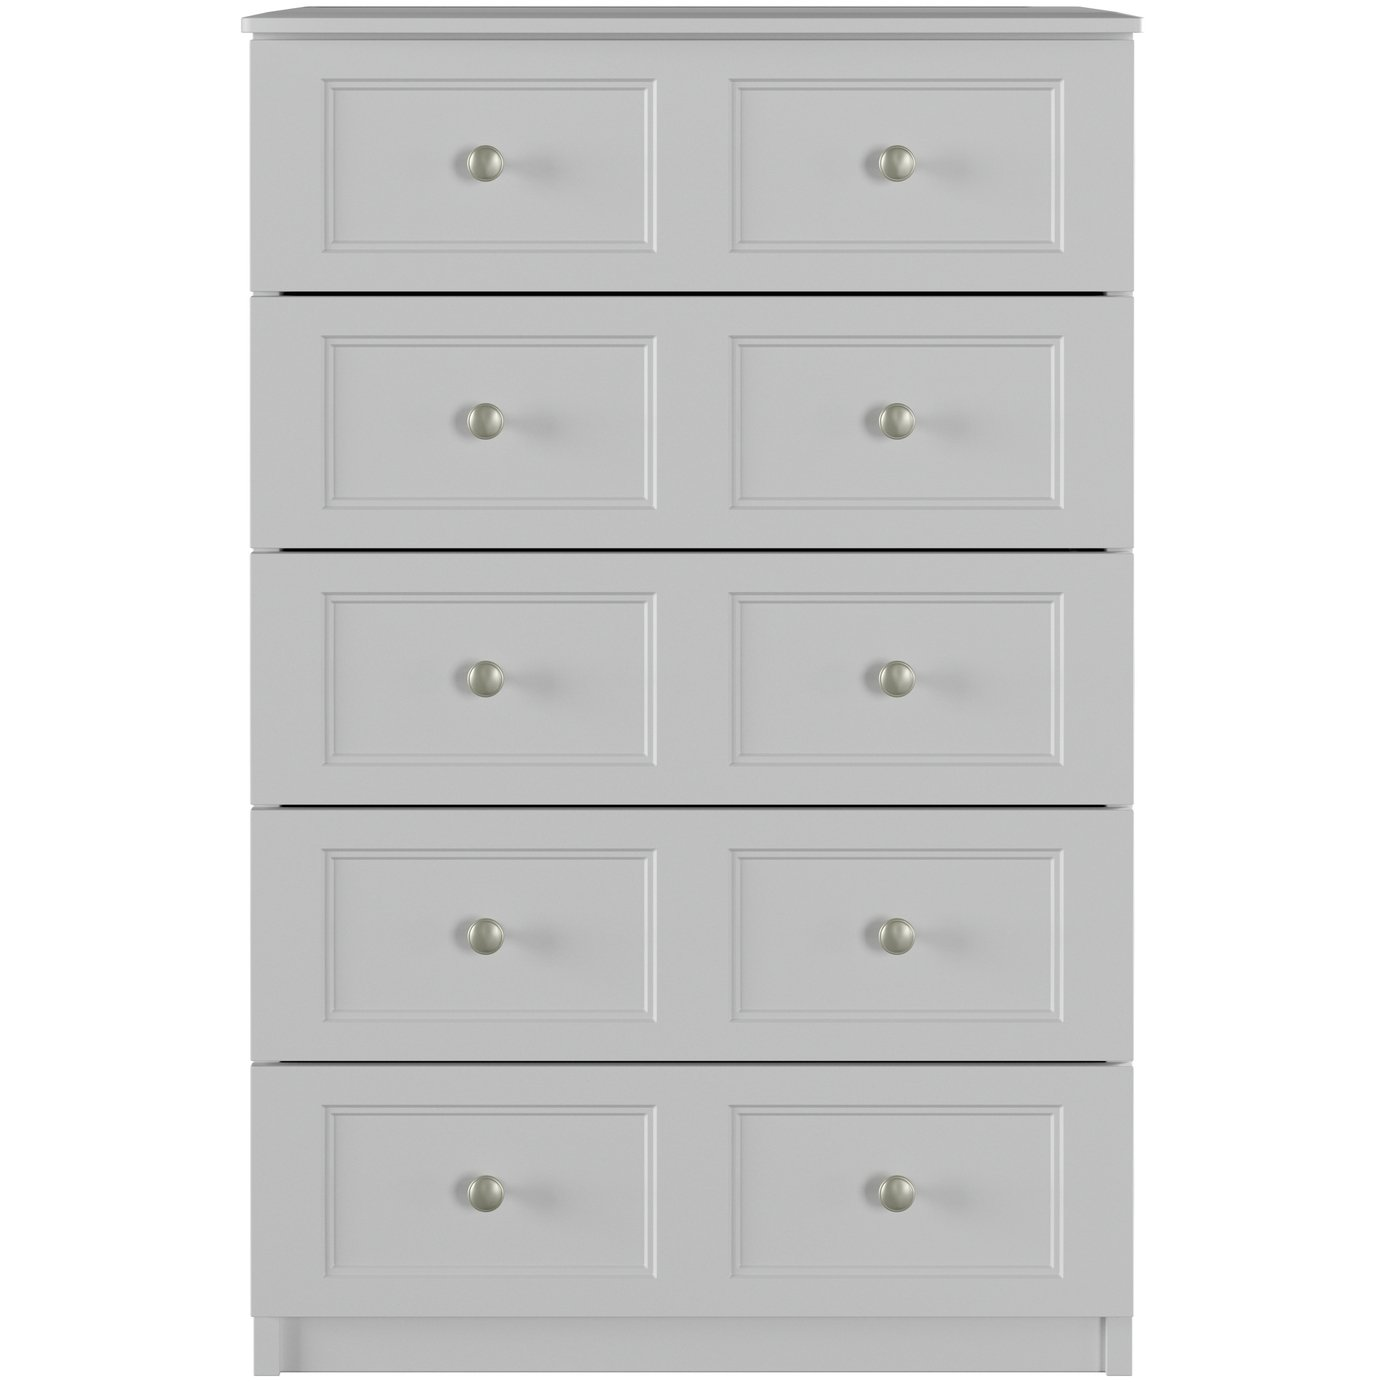 One Call Bexley 5 Drawer Chest of Drawers - Grey